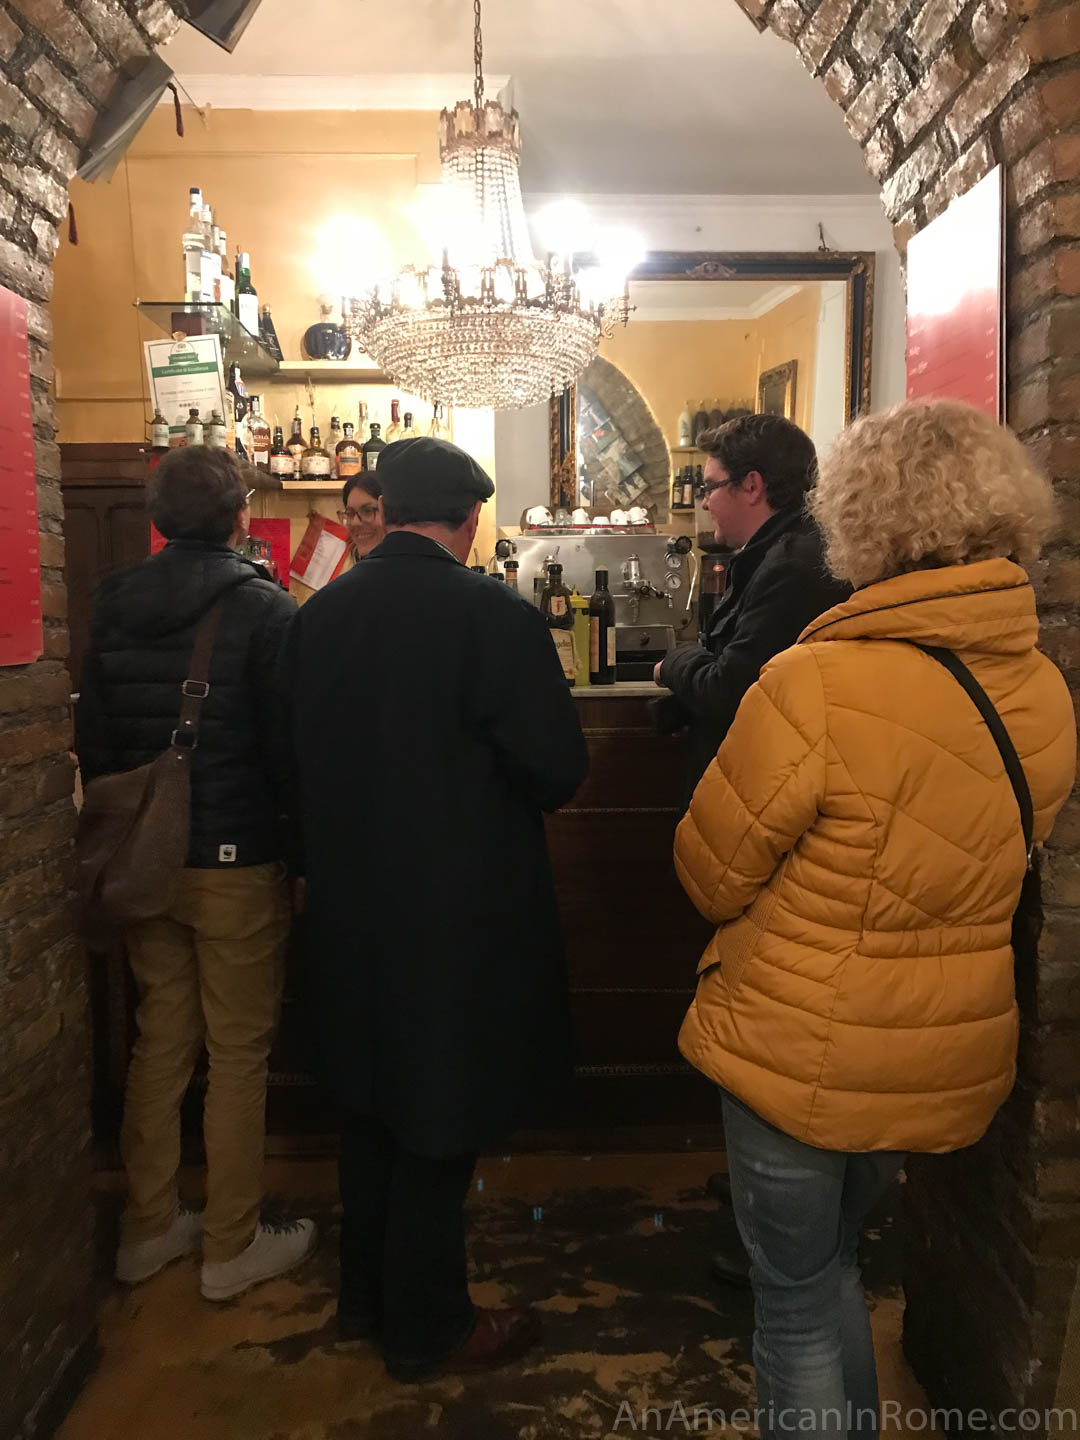 two men and a woman in a yellow coat standing in a small bar